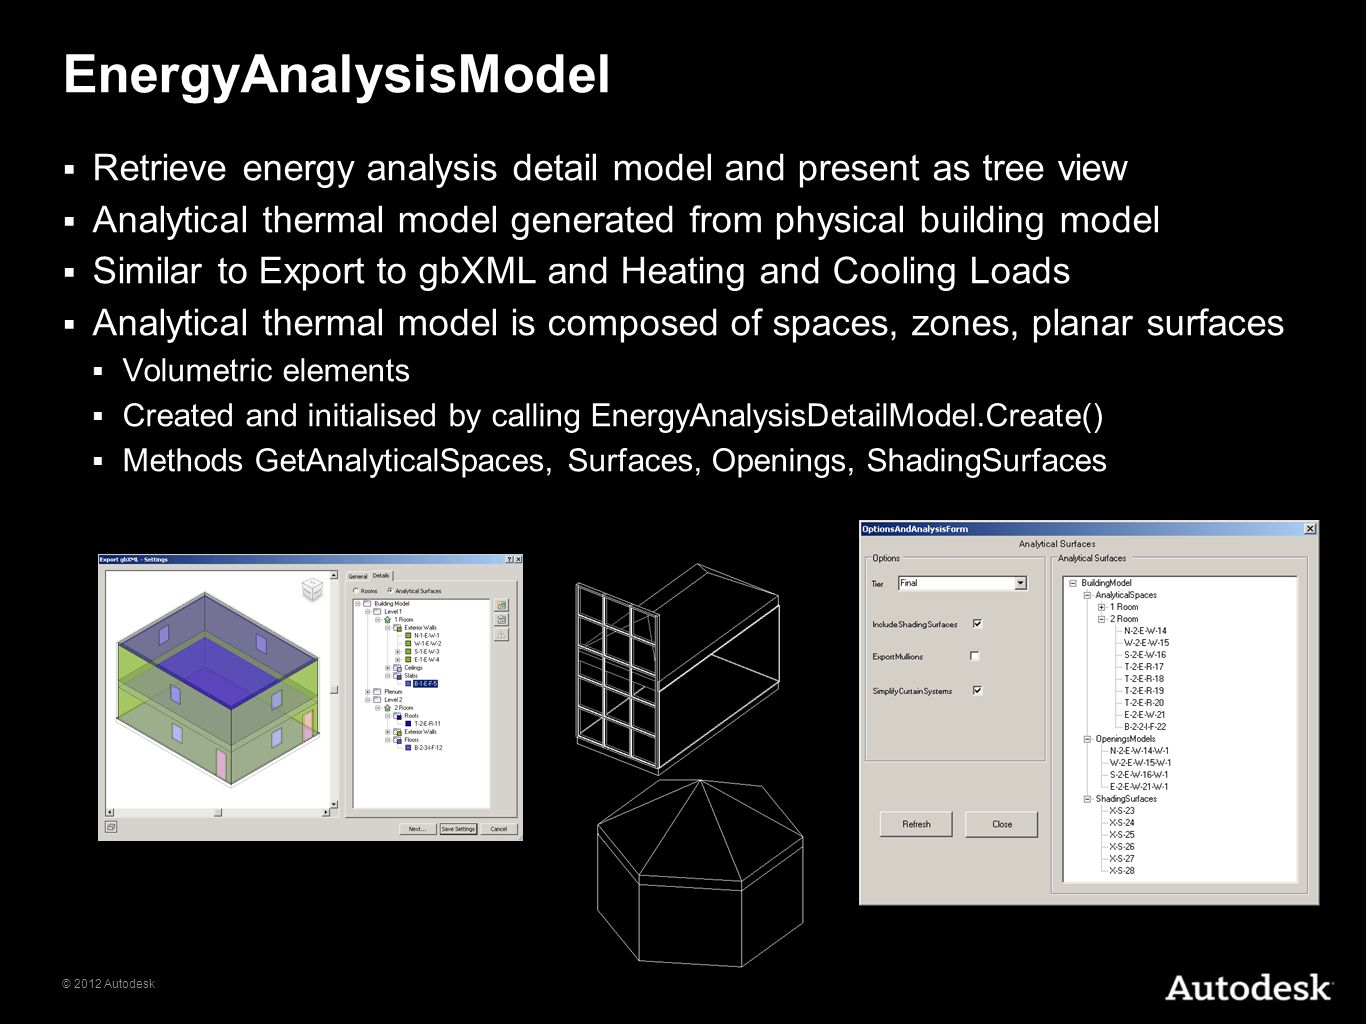 EnergyAnalysisModel Retrieve energy analysis detail model and present as tree view. Analytical thermal model generated from physical building model.